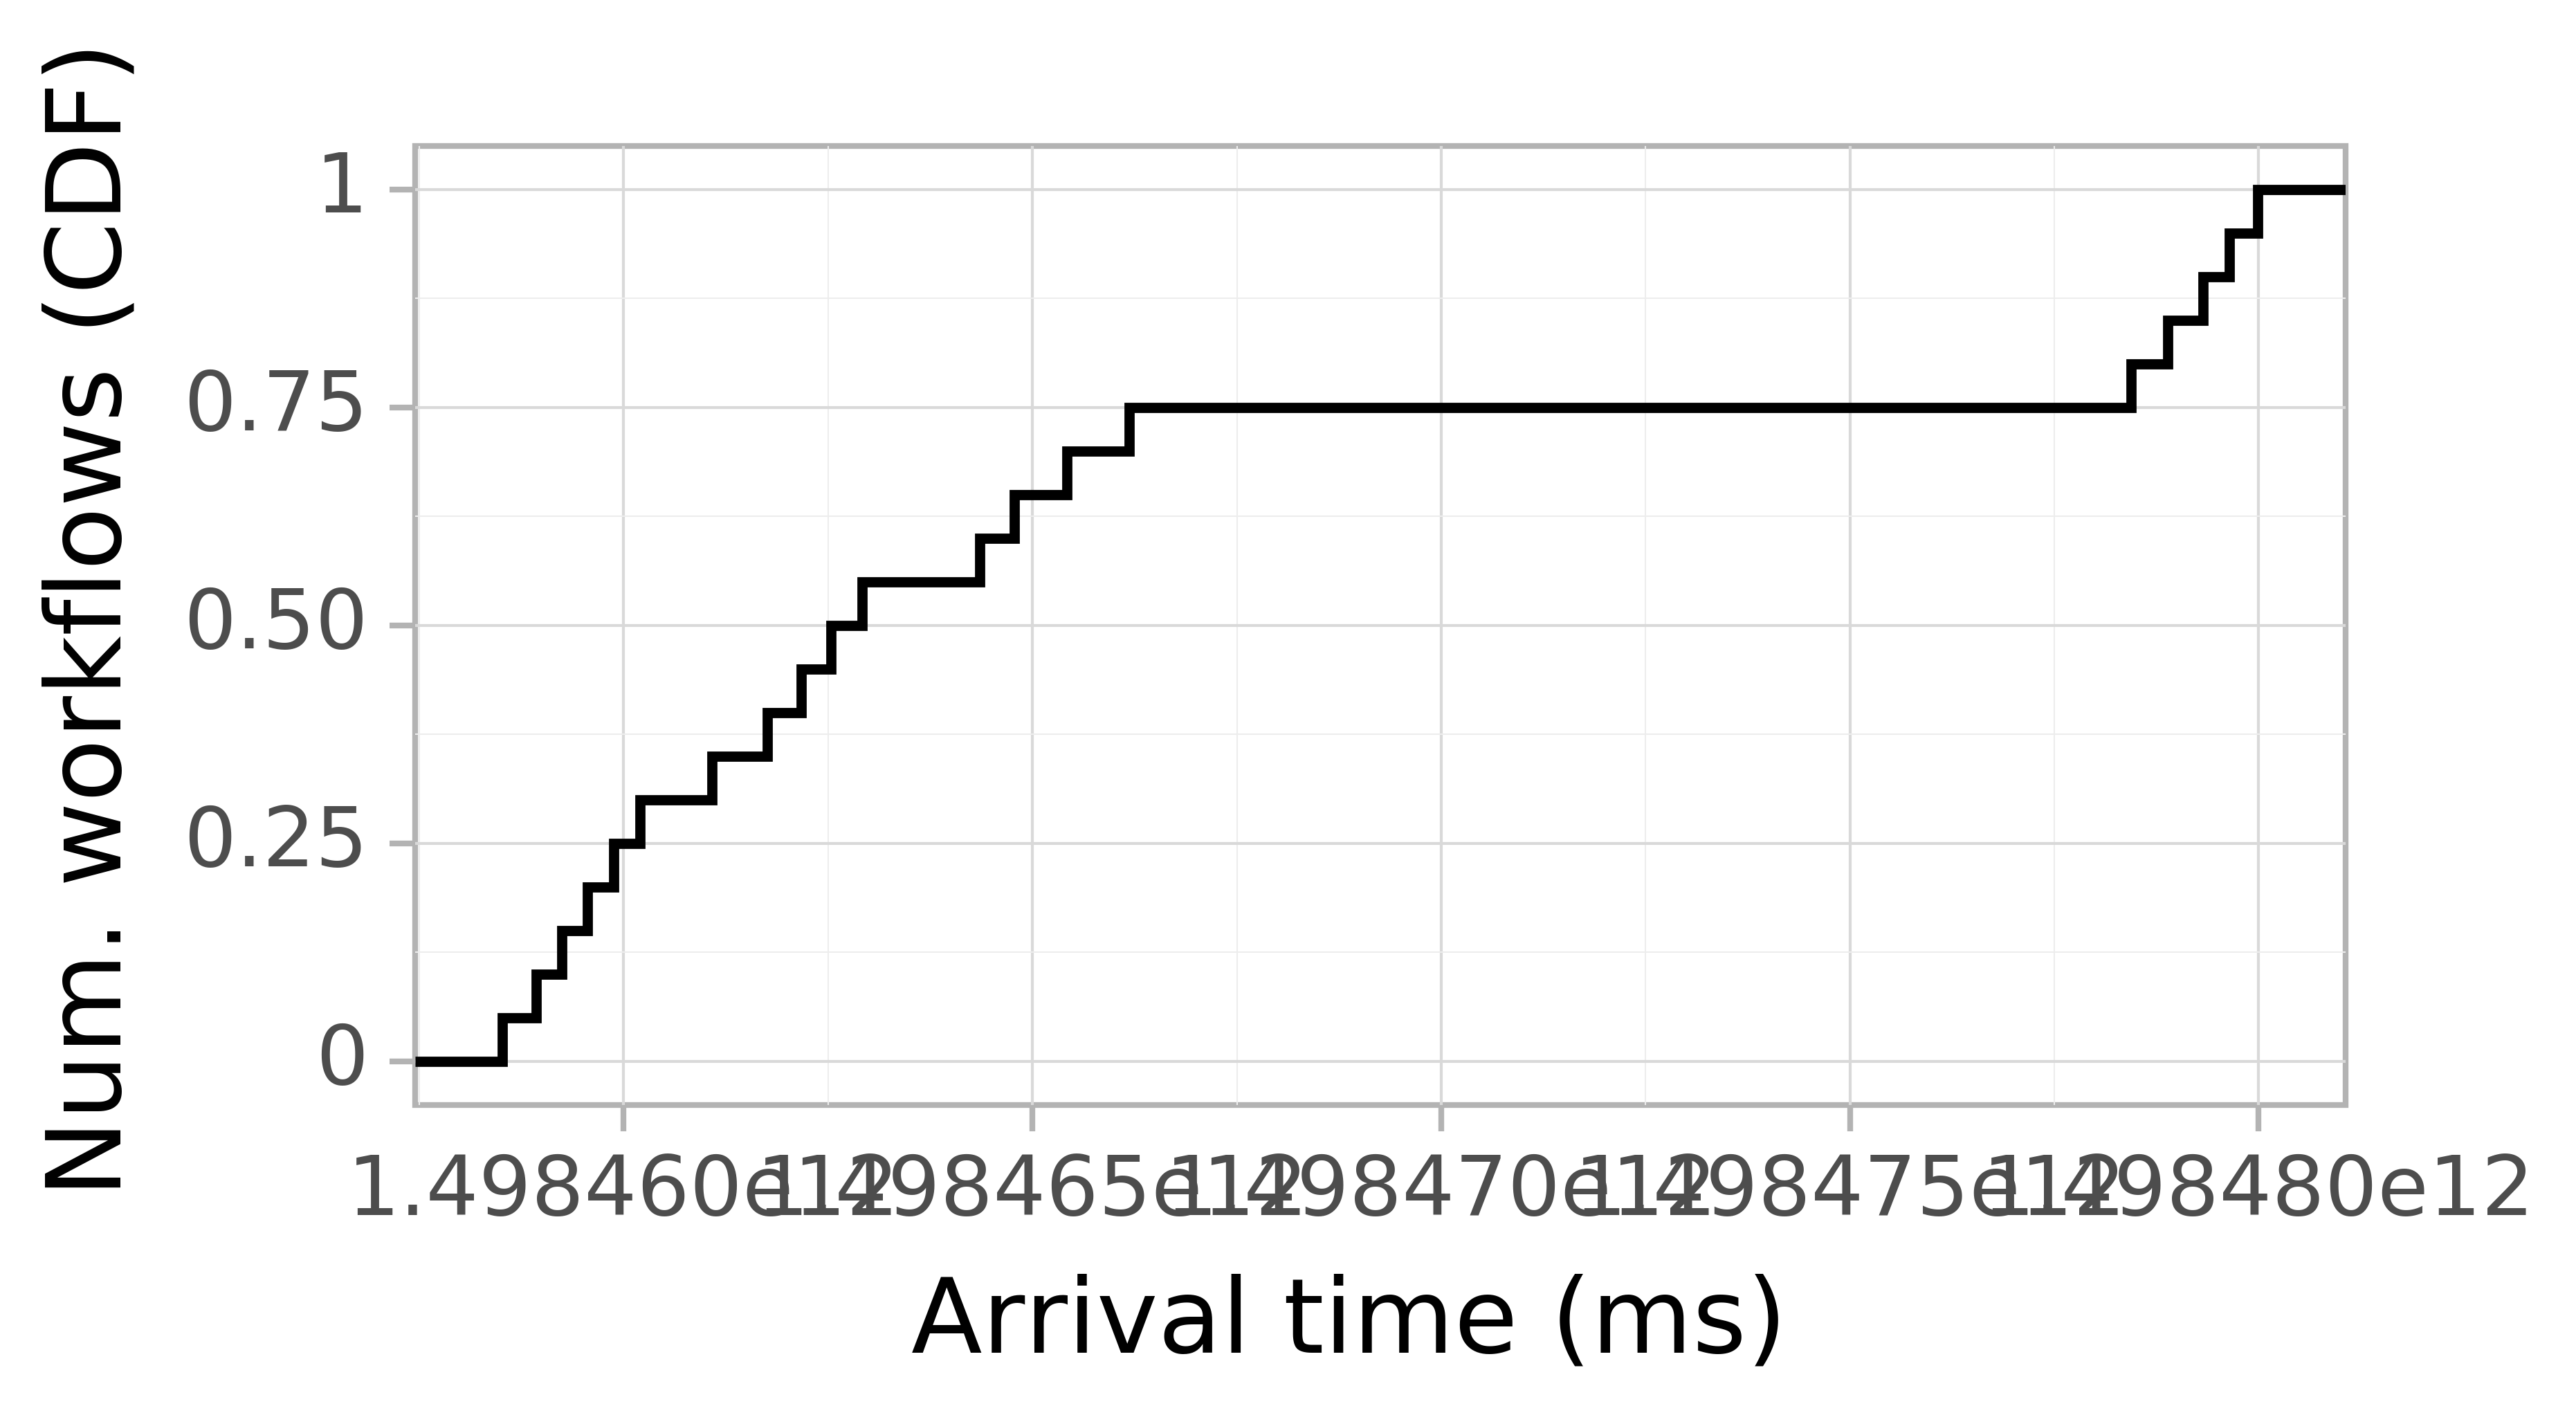 Job arrival CDF graph for the askalon-new_ee30 trace.